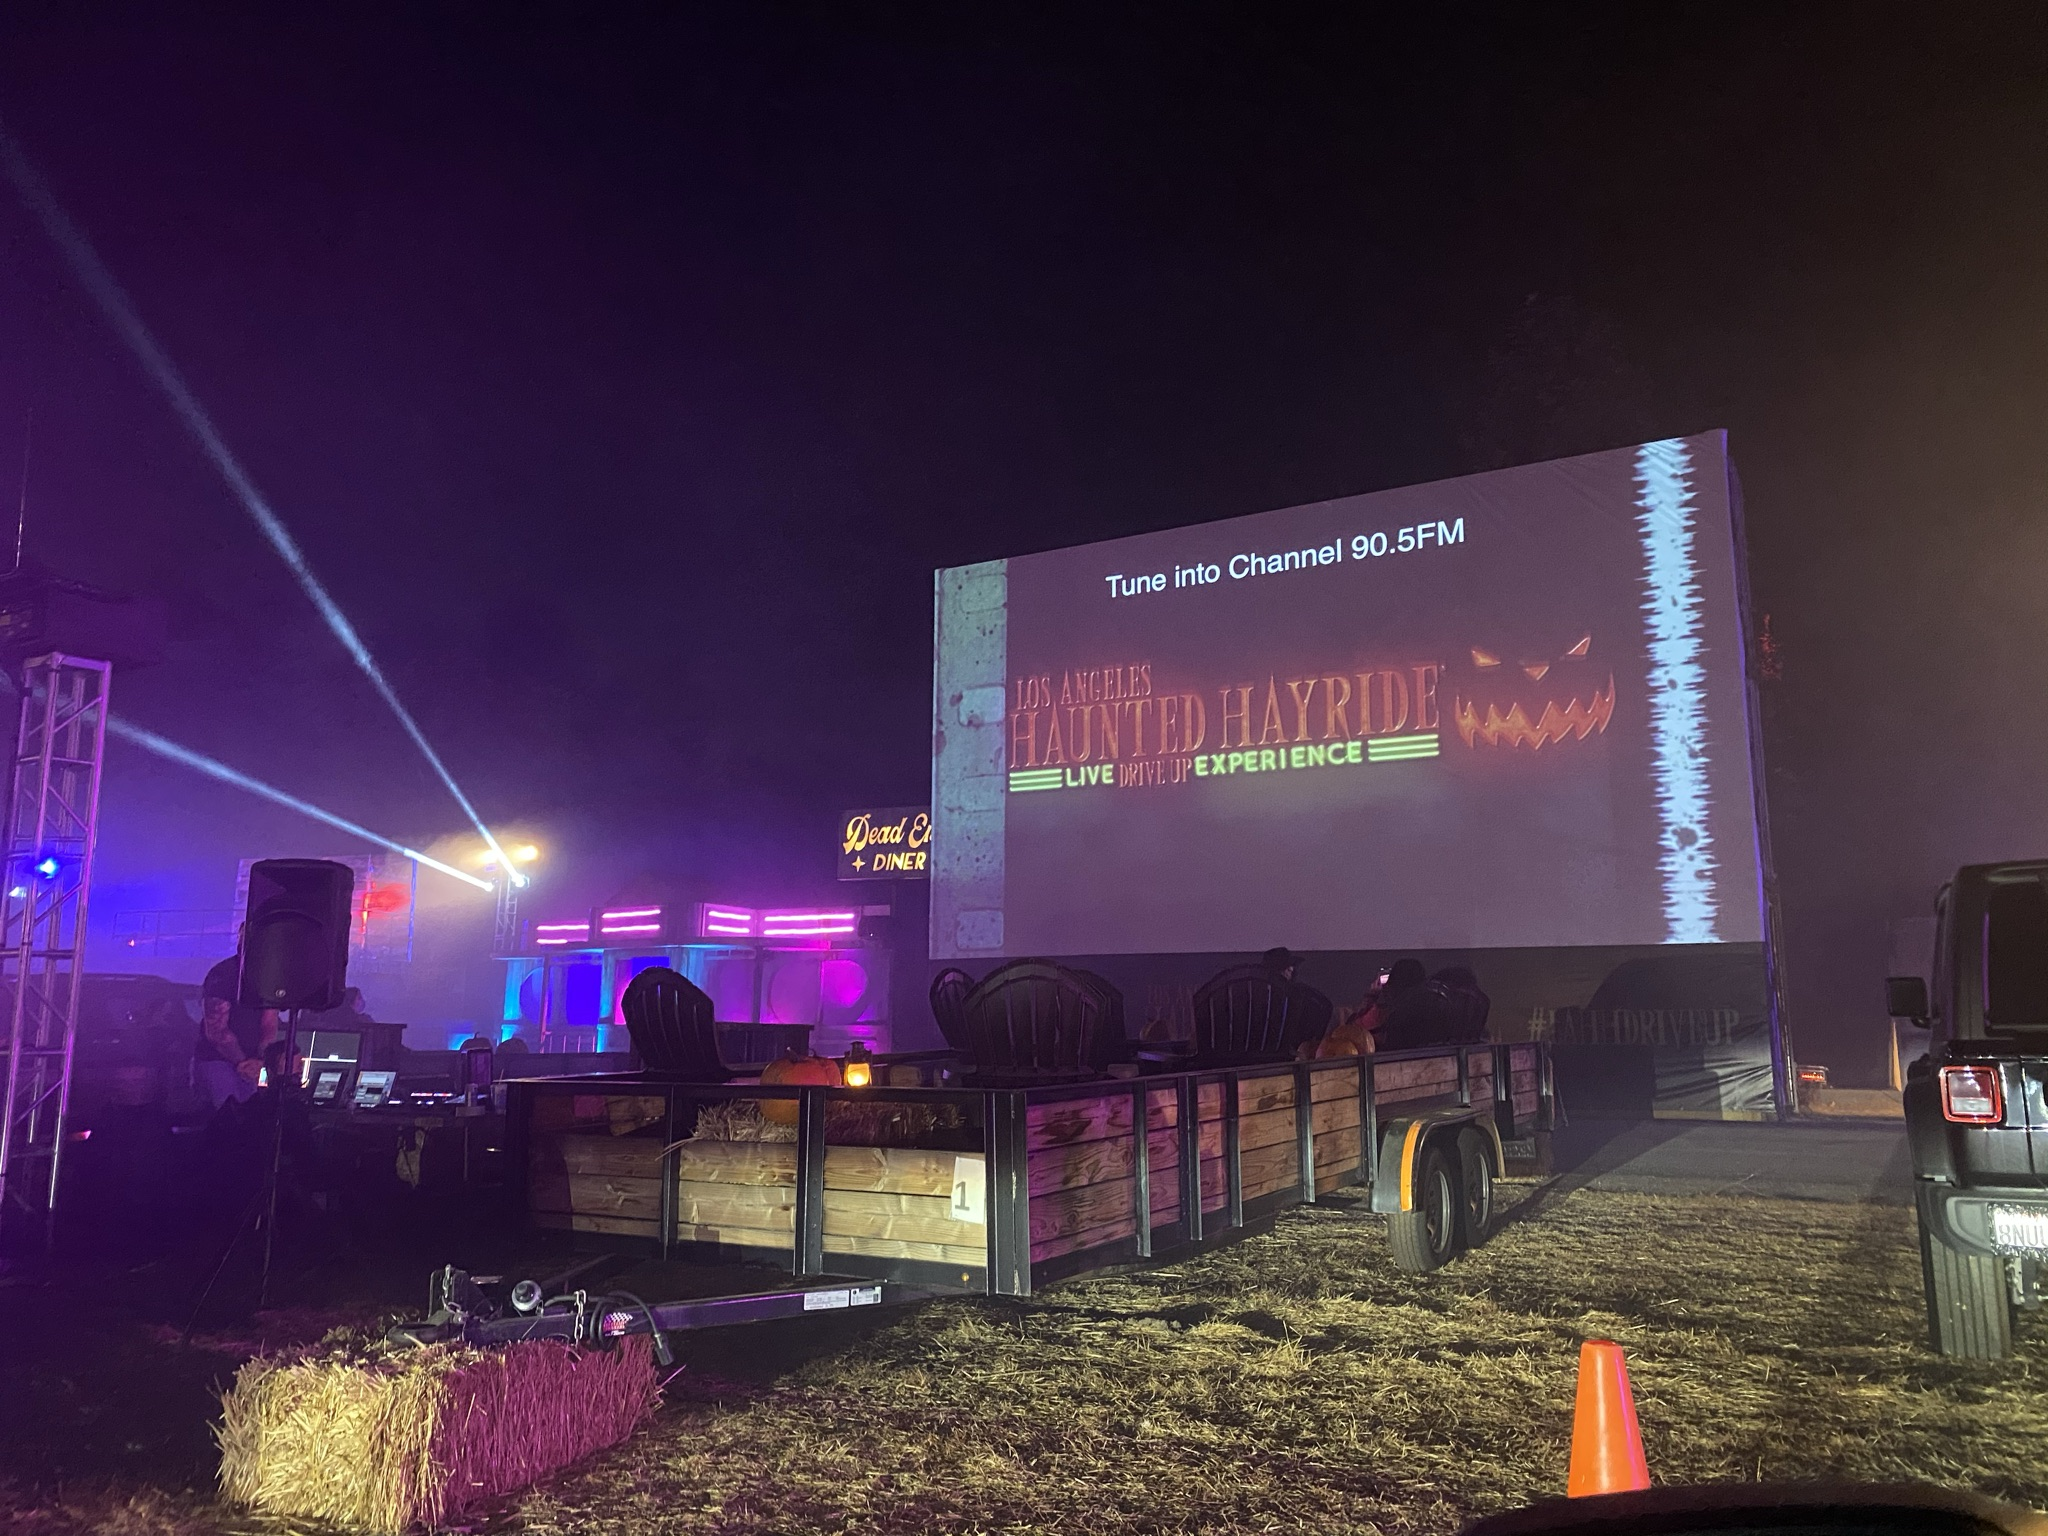 [Haunt Review] LA Haunted Hayride: Live Drive Up Experience